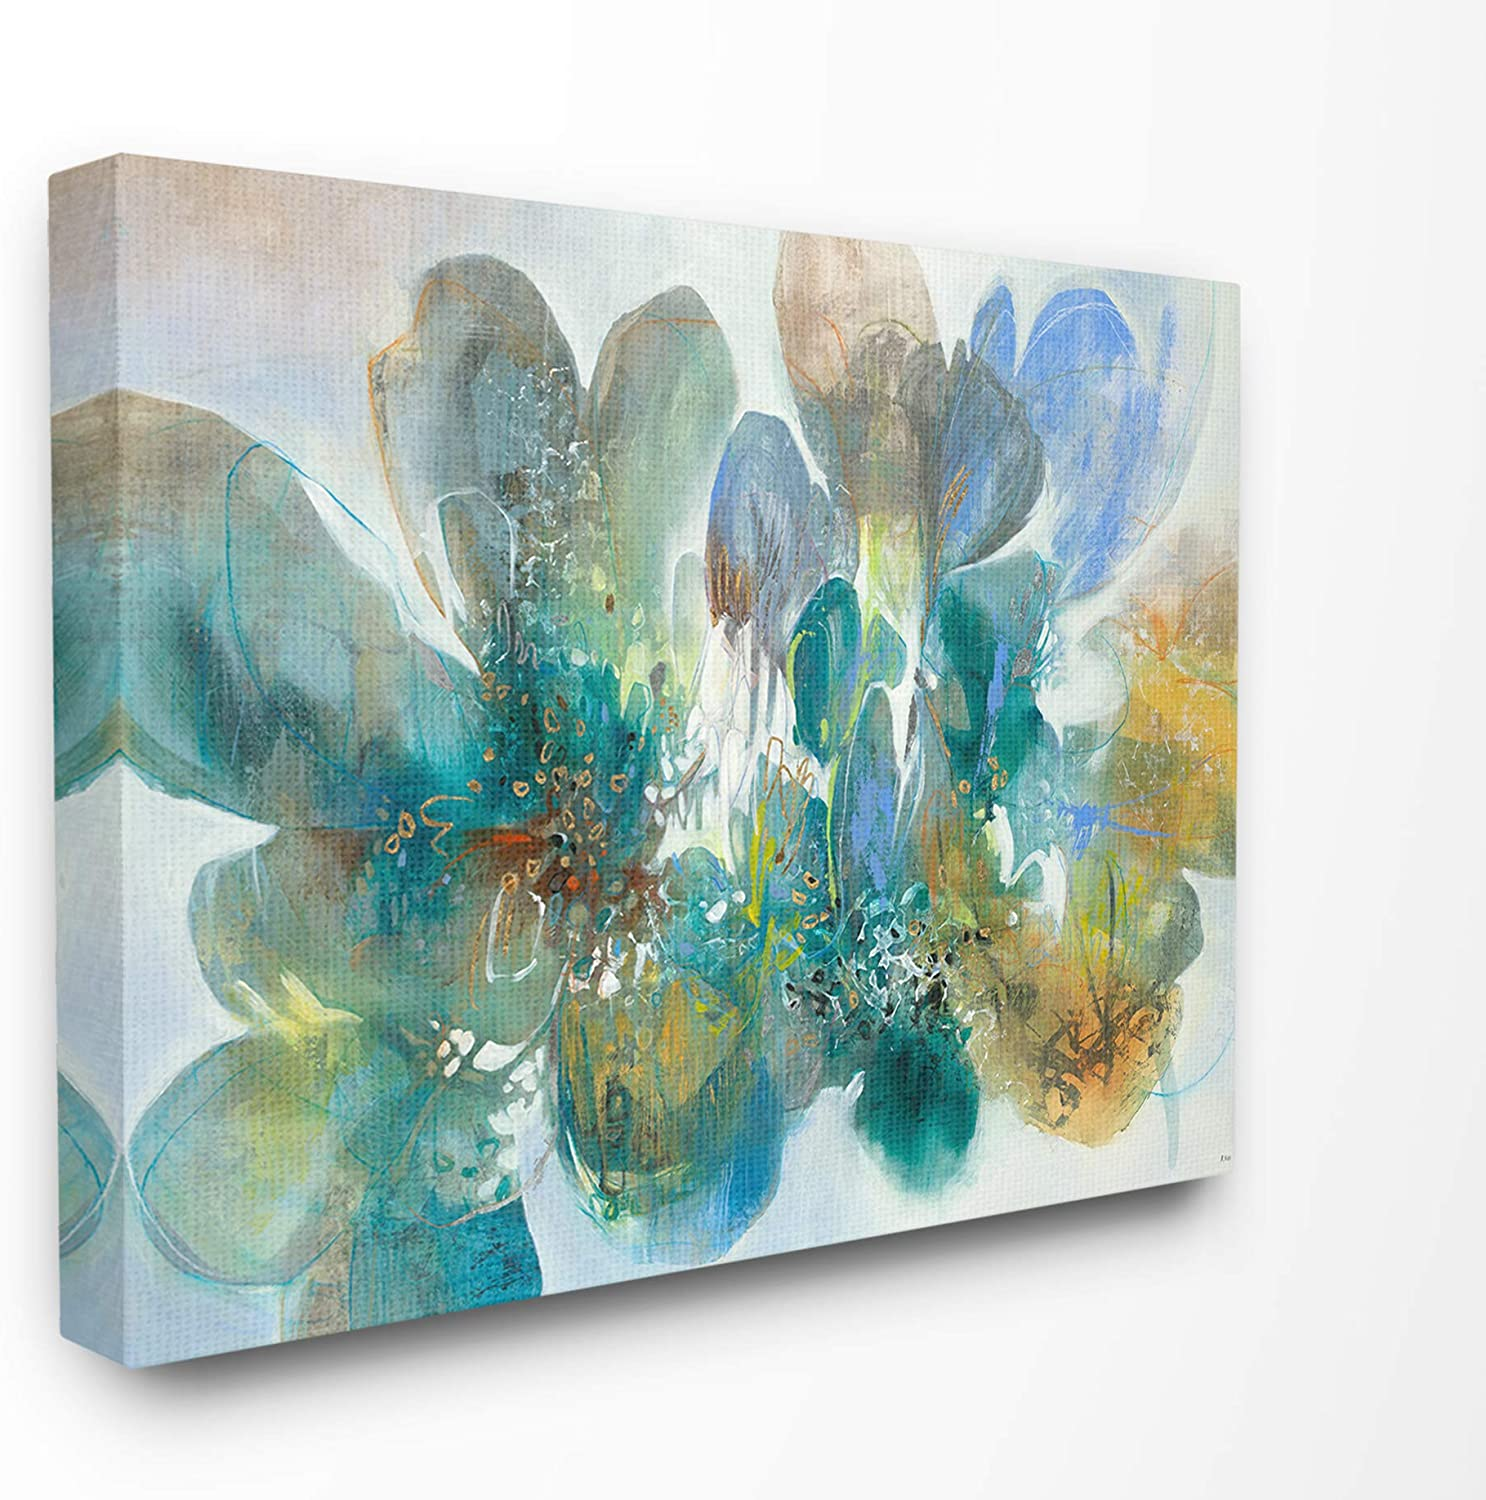 The Stupell Home Decor bluee and Green Bright Painterly Florals Stretched Canvas Wall Art, 16 X 20, Multicolor